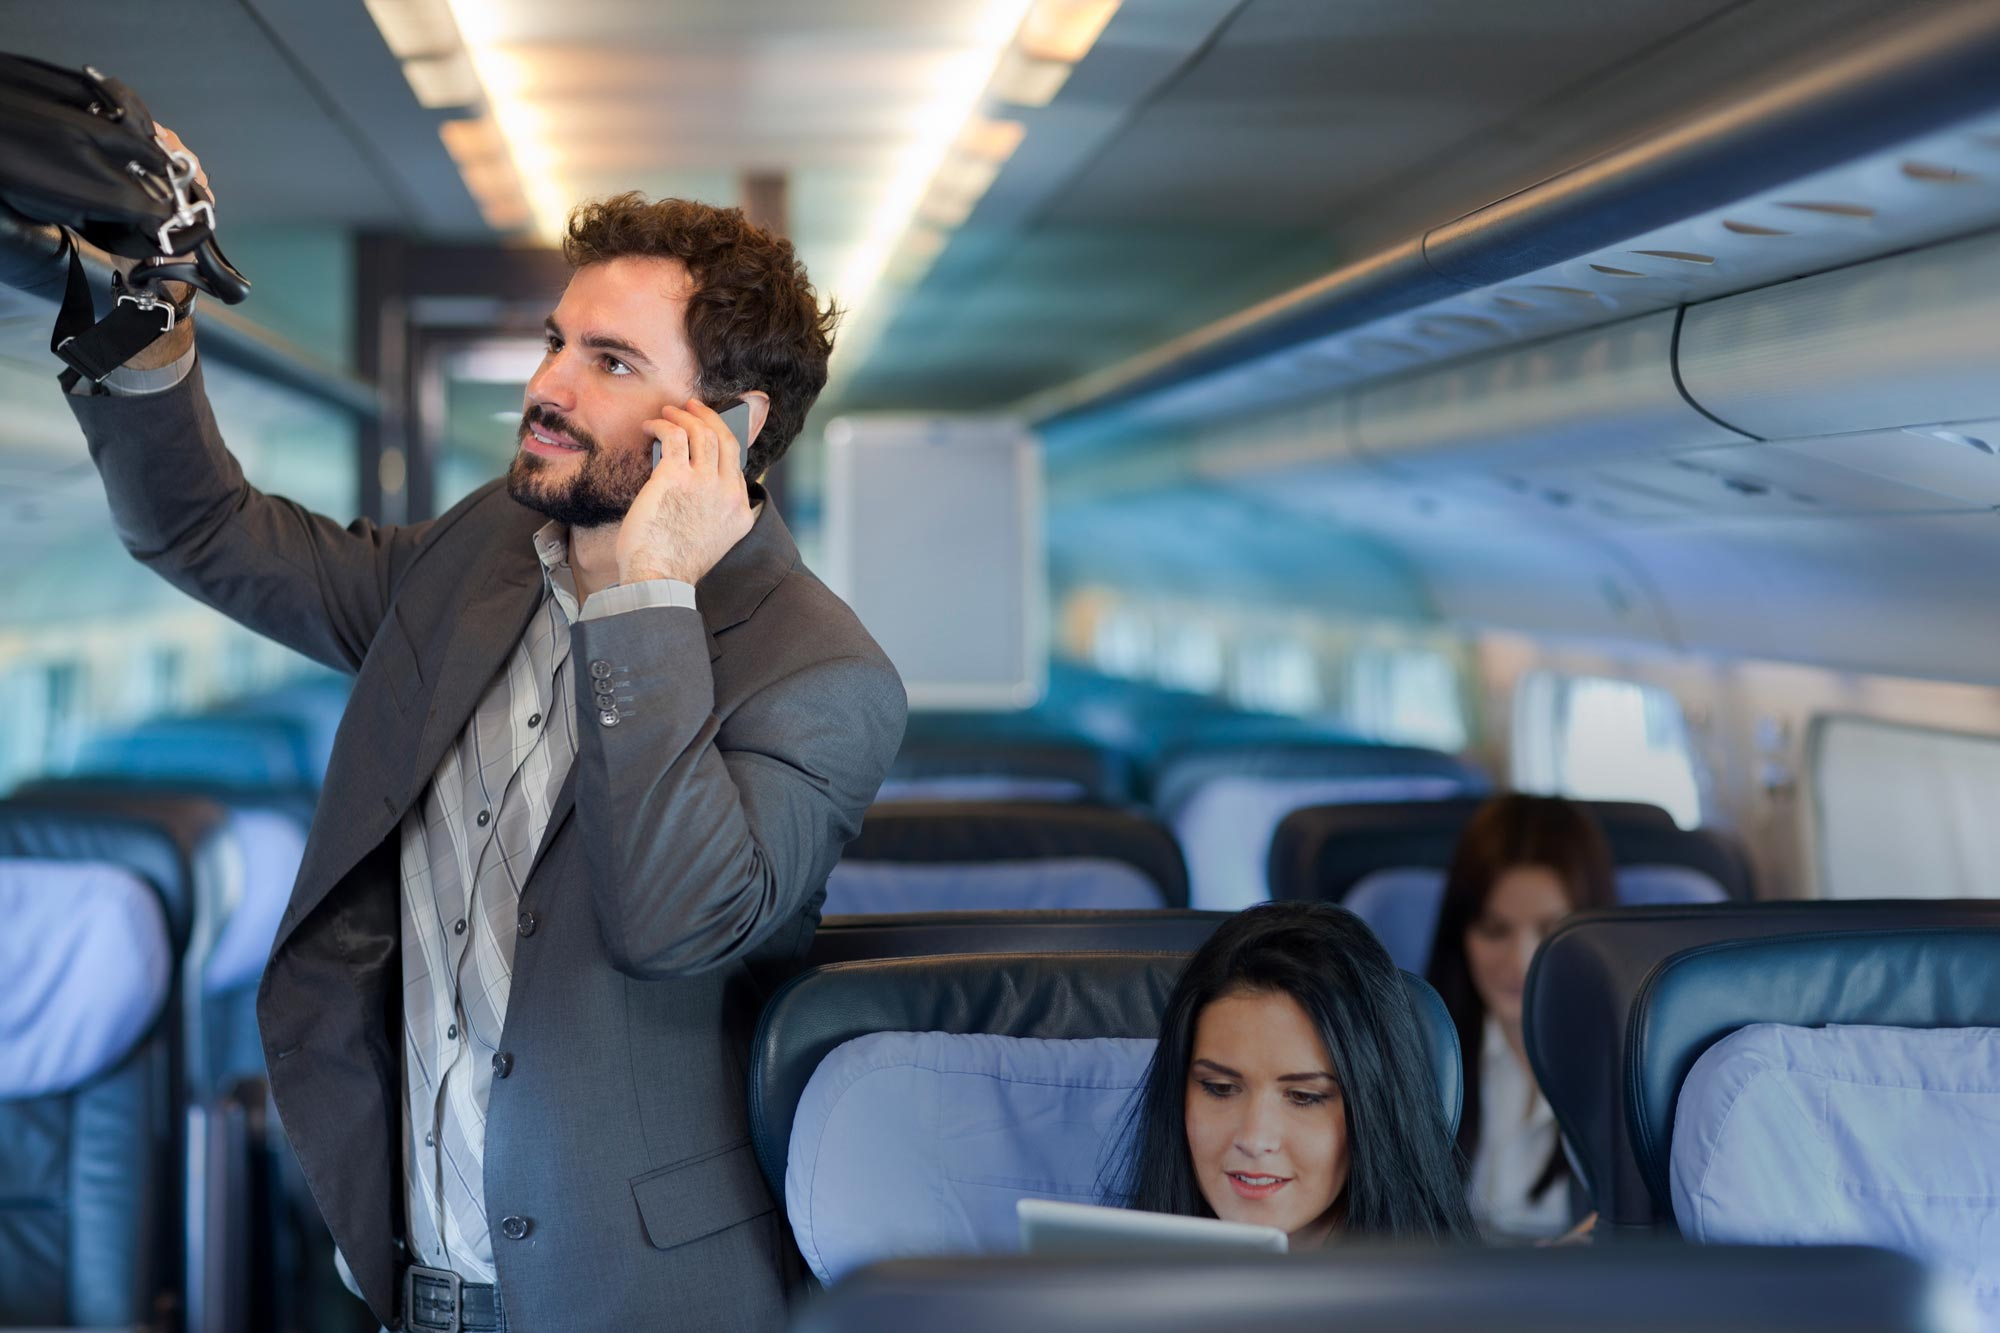 Amtrak leather train seats make $435 luxury bag